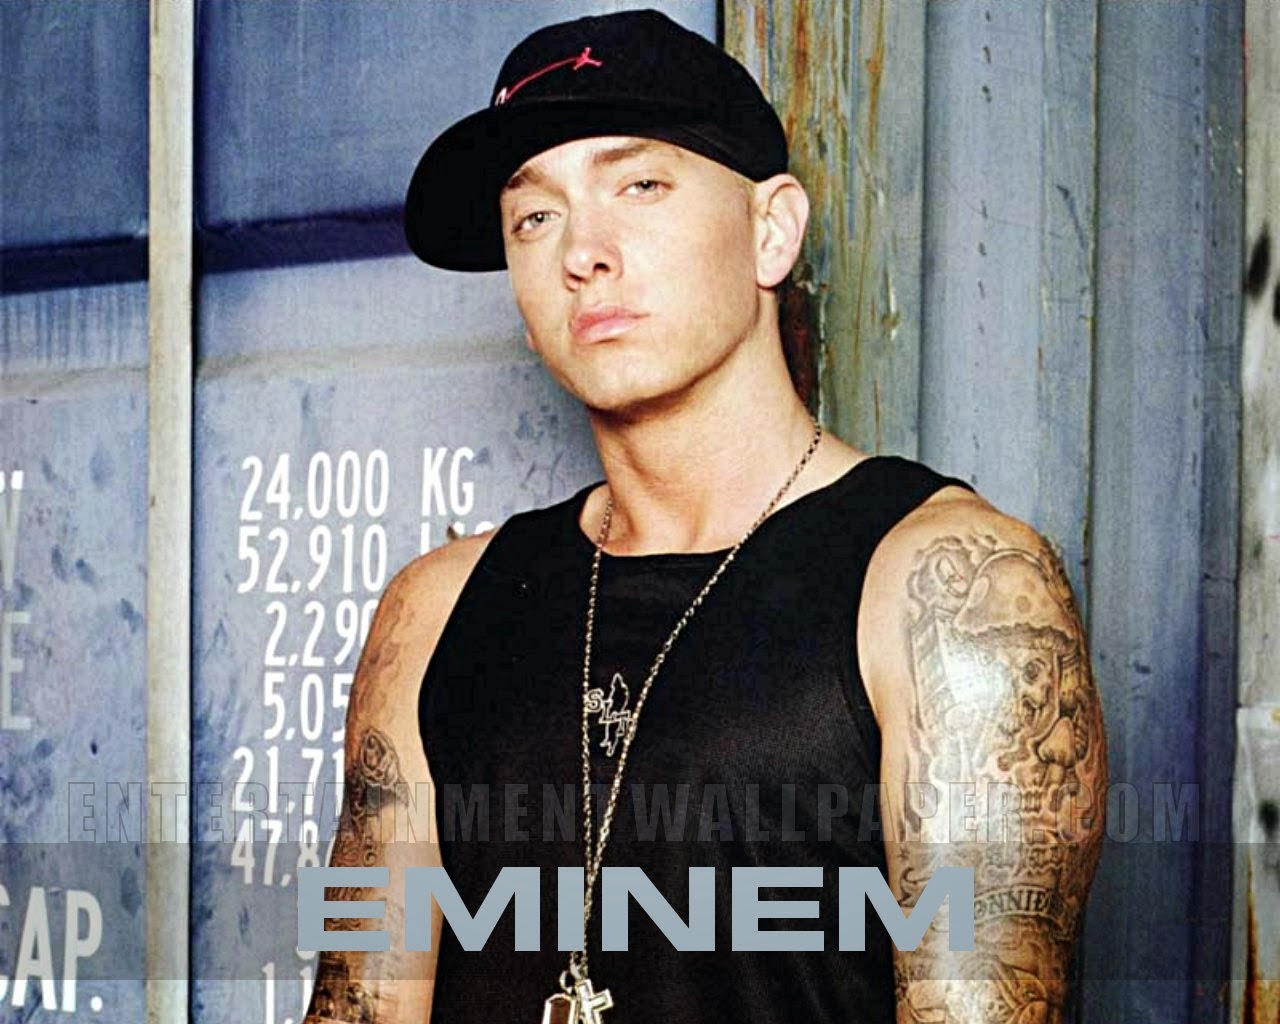 We Support Eminem